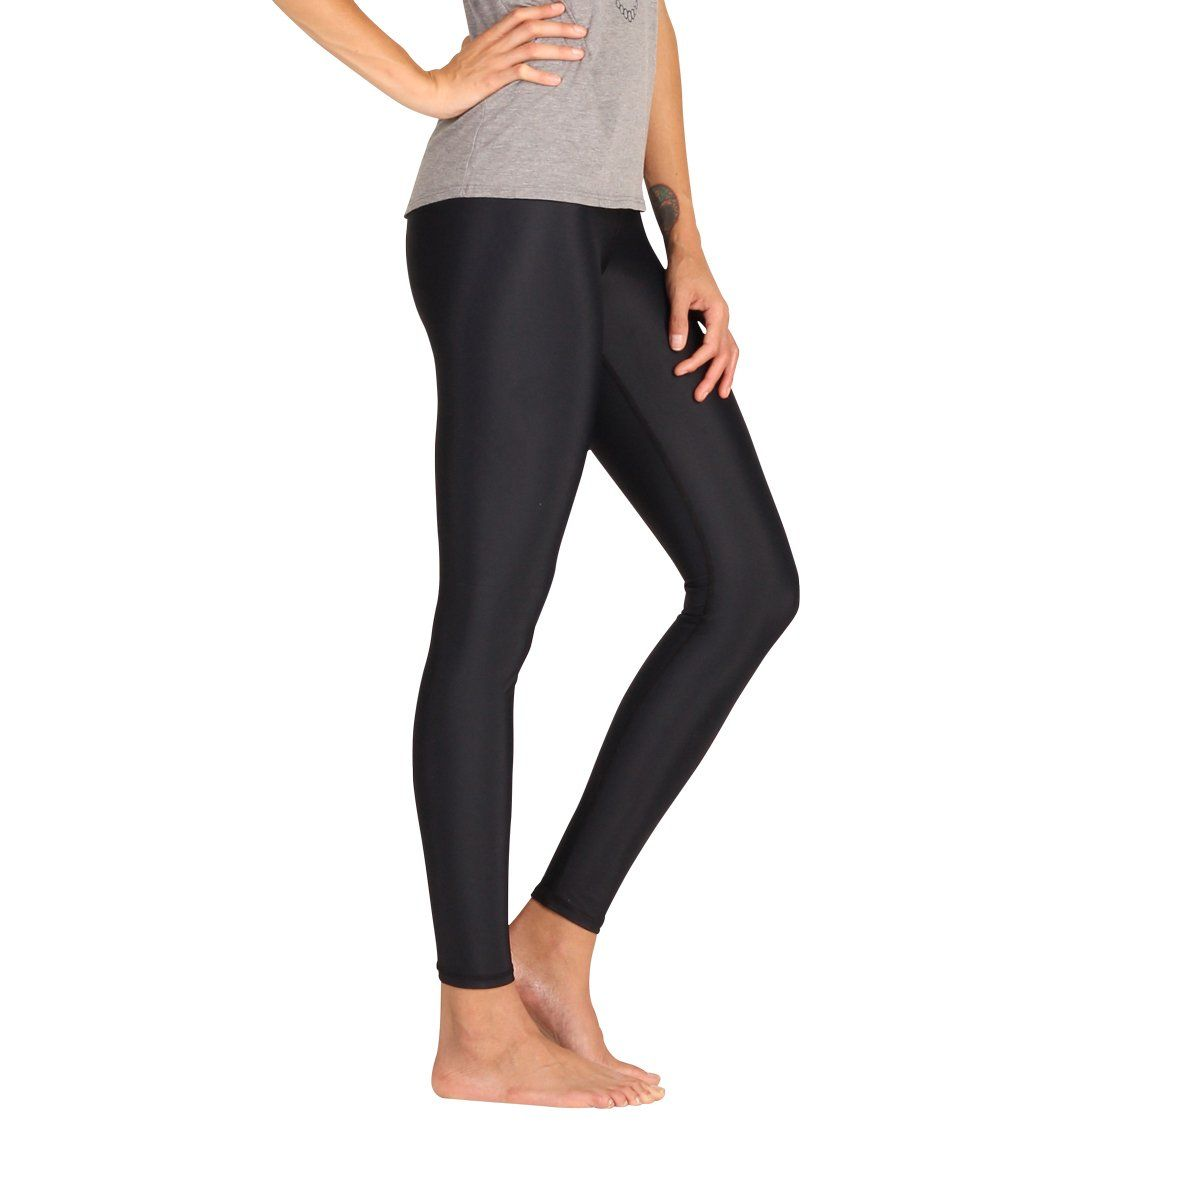 2d2eb294993b3 Basically Perfect Legging from Yoga Democracy. Our latest fabric addition  to our recycled nylon range